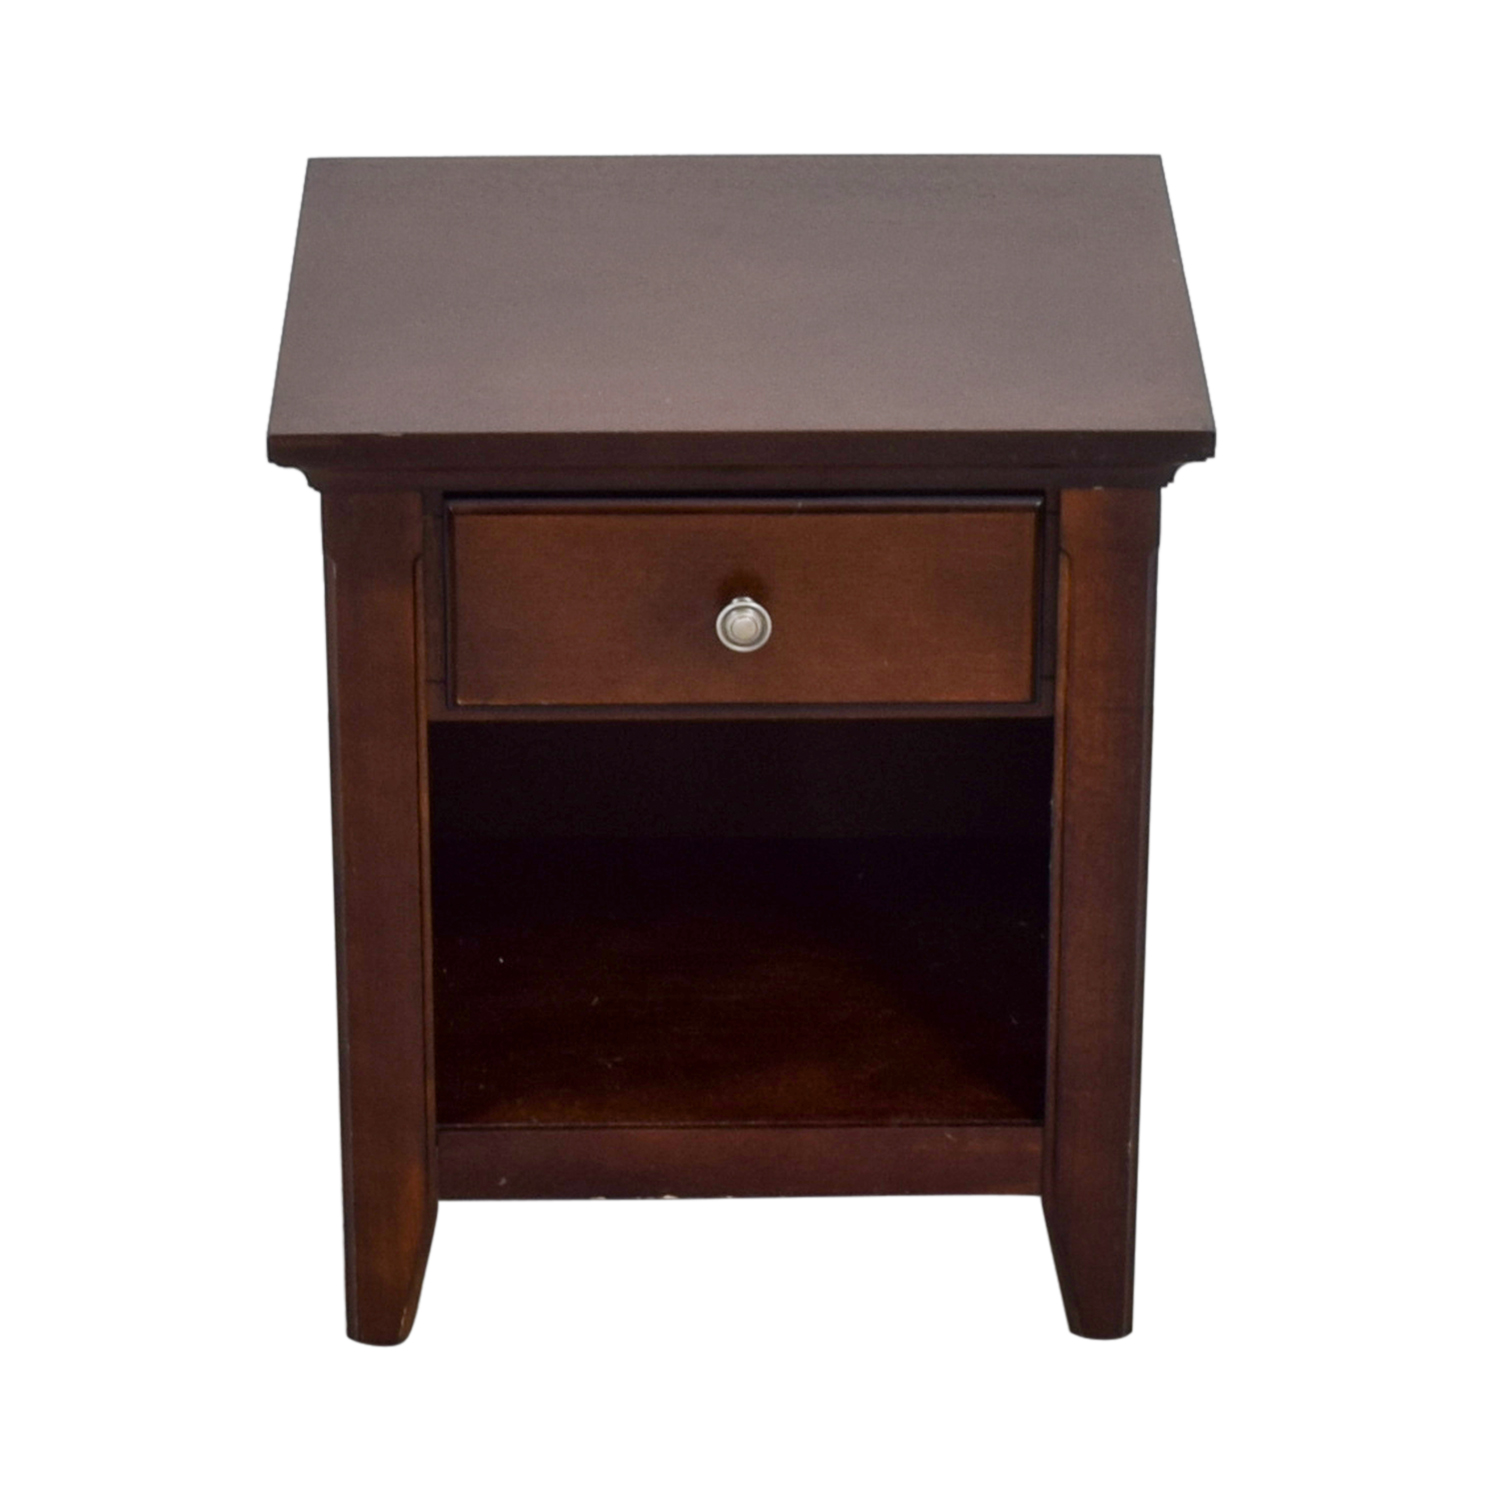 Classic Single Drawer End Table second hand